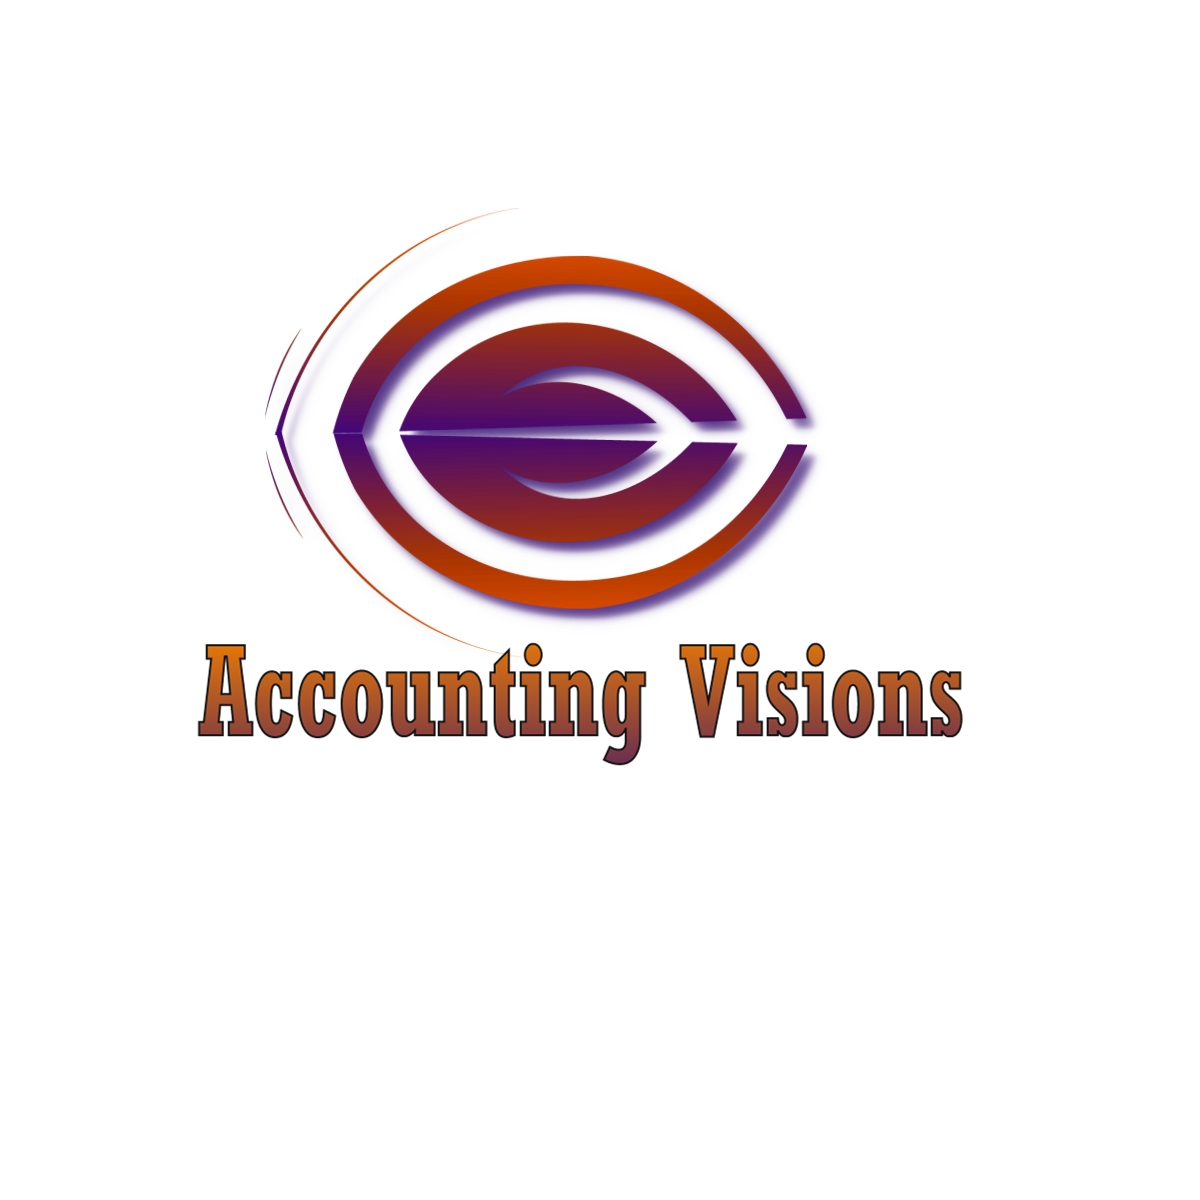 Logo Design by joshen30 - Entry No. 116 in the Logo Design Contest Accounting Visions.